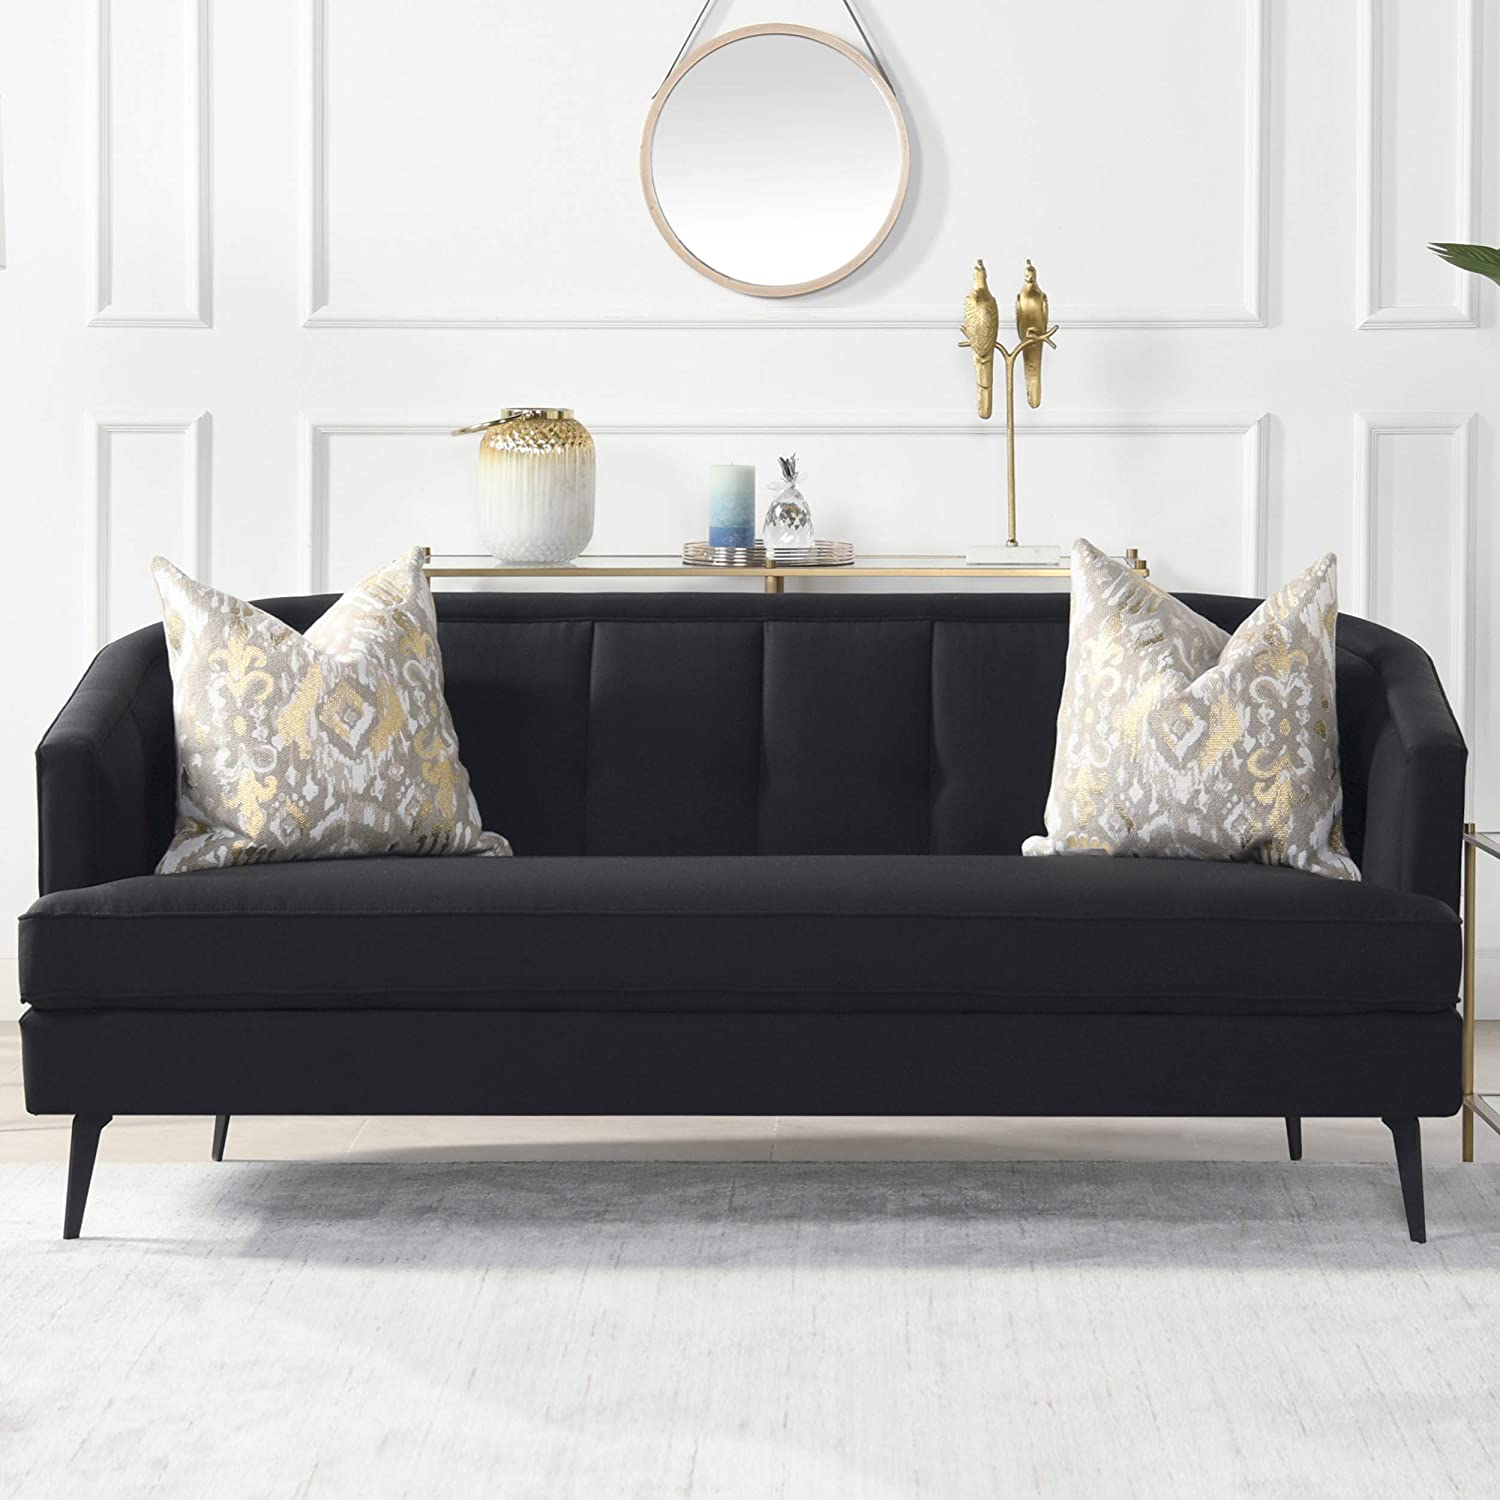 small-black-sofa-with-cabriole-back-channel-tufting-elegant-furniture-for-small-floor-plan-modern-homes